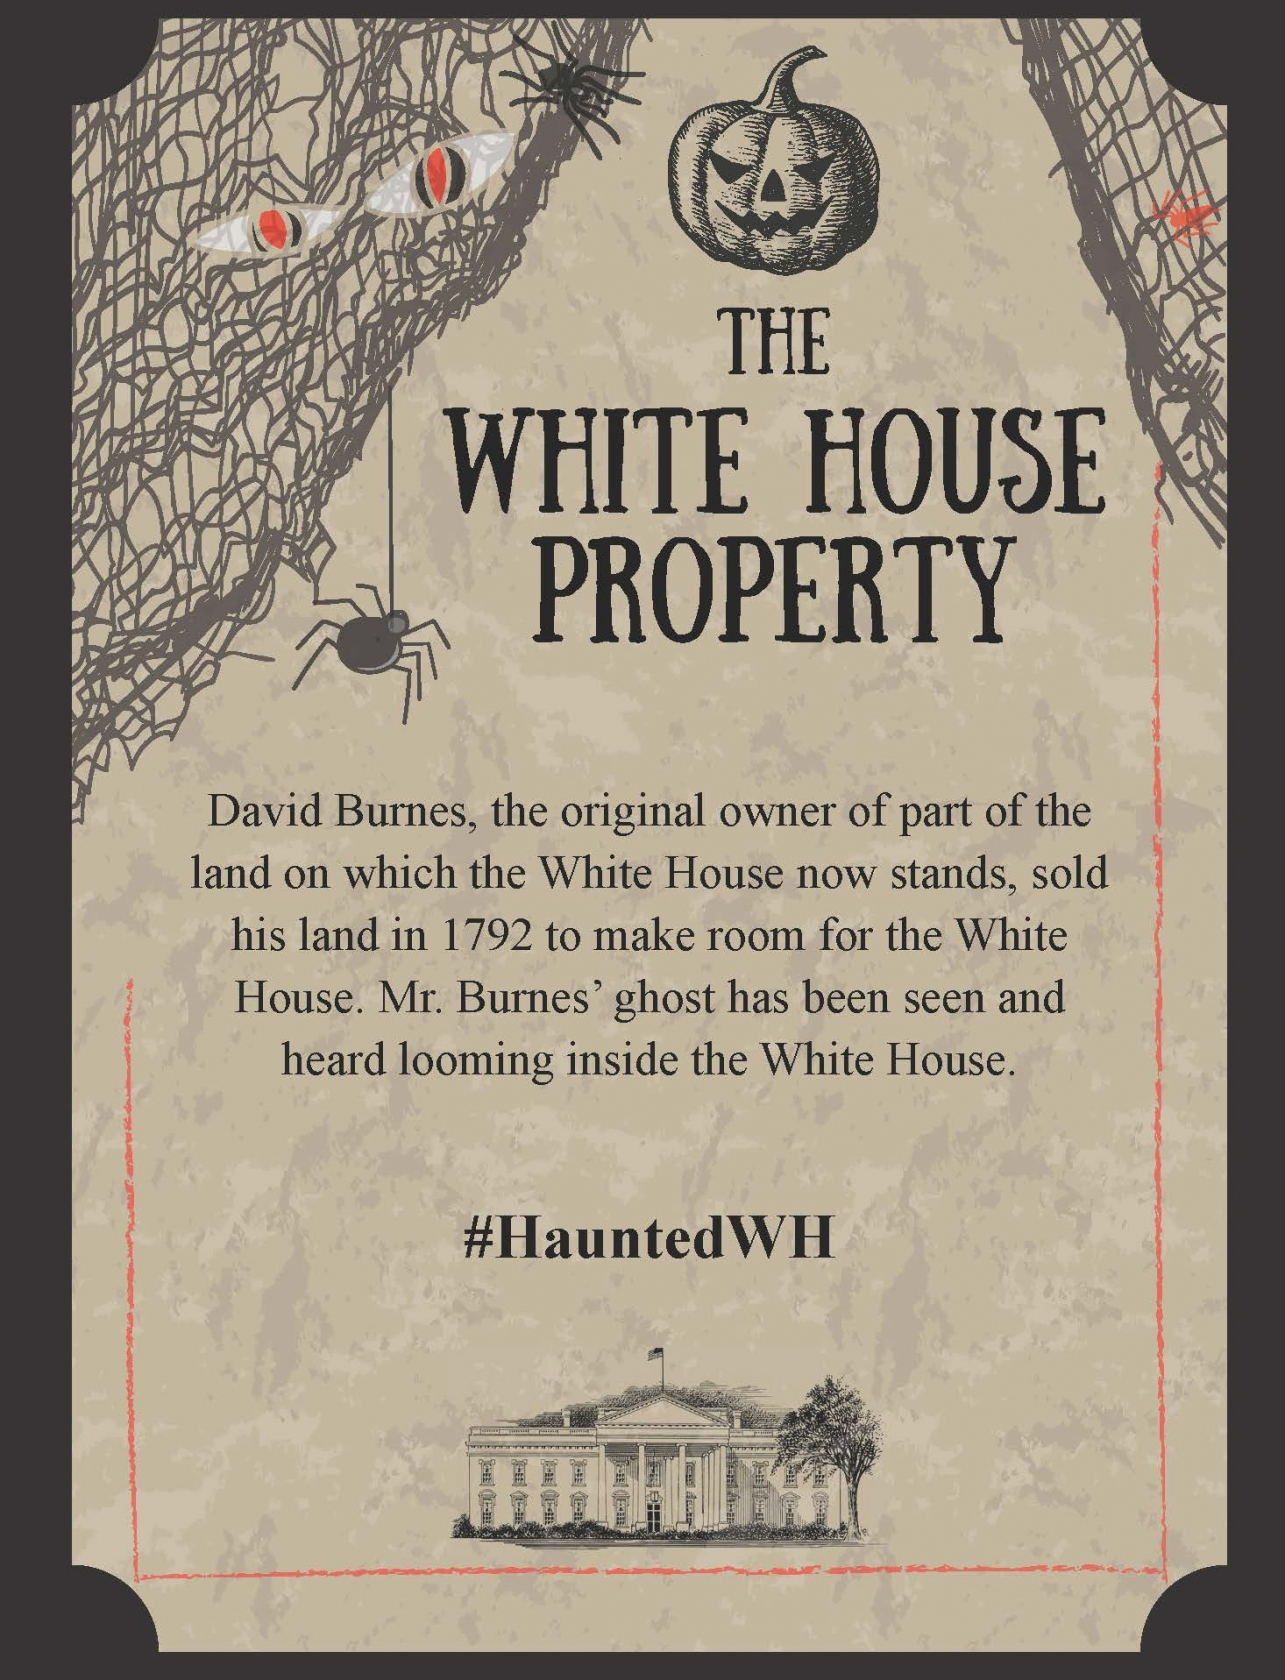 David Burnes, the original owner of part of the land on which the White House now stands, sold his land in 1792 to make room for the White House. Mr. Burnes' ghost has been seen and heard looming inside the White House.